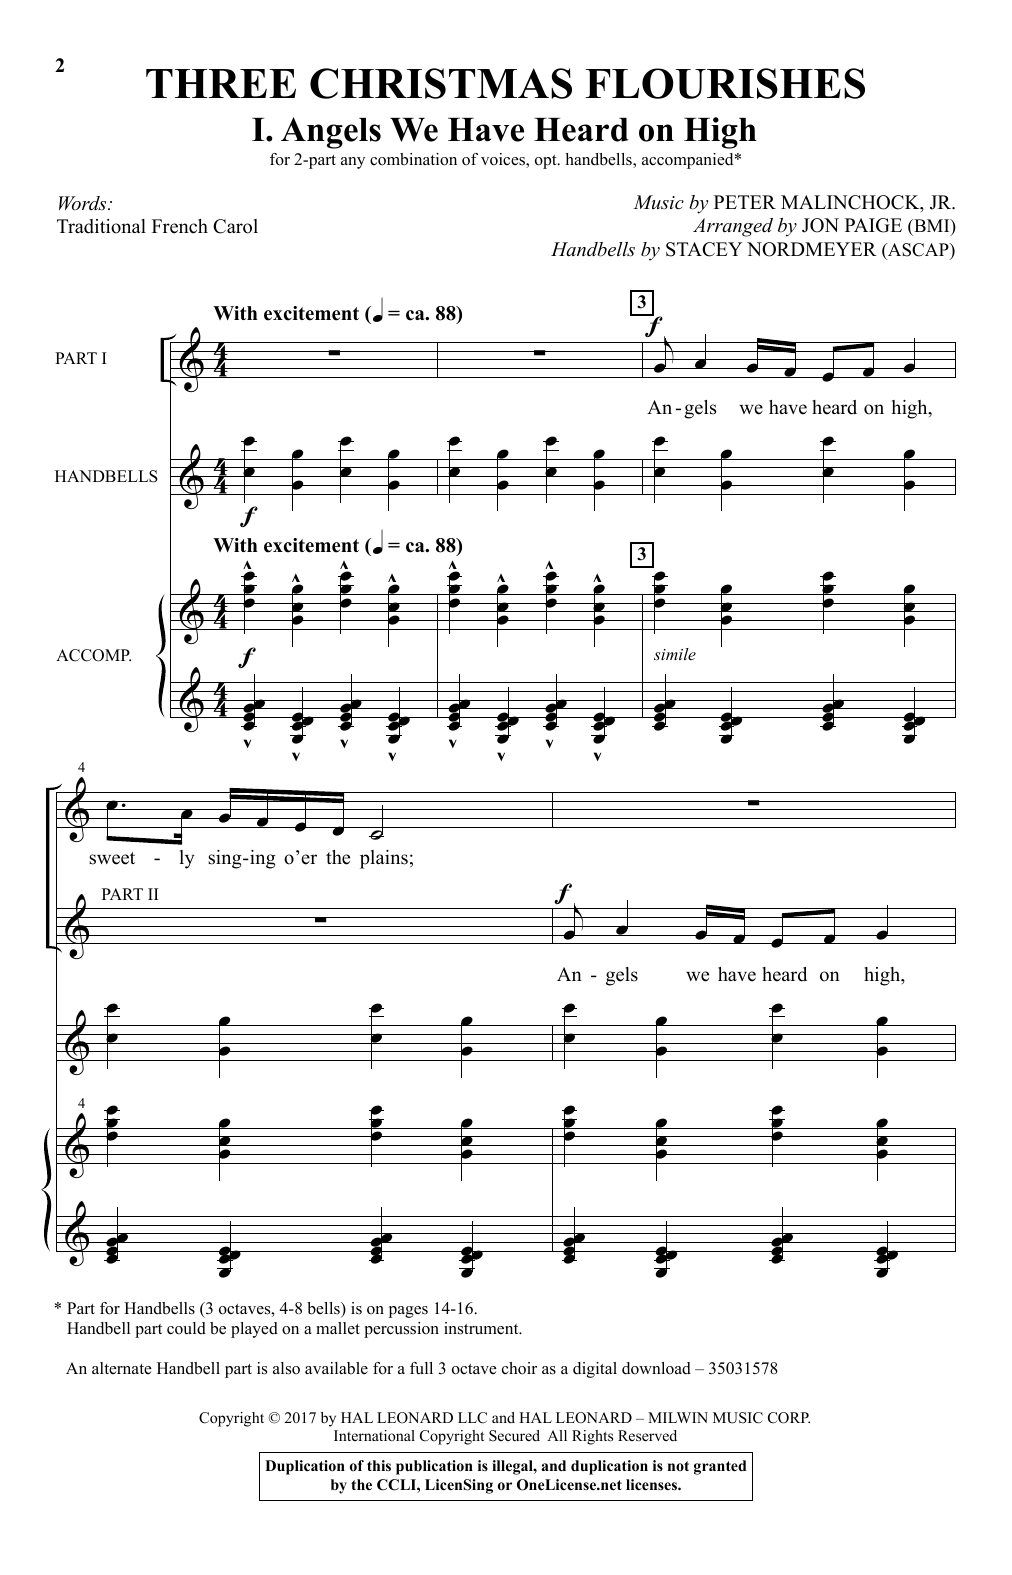 Jon Paige Angels We Have Heard On High Sheet Music Notes Chords